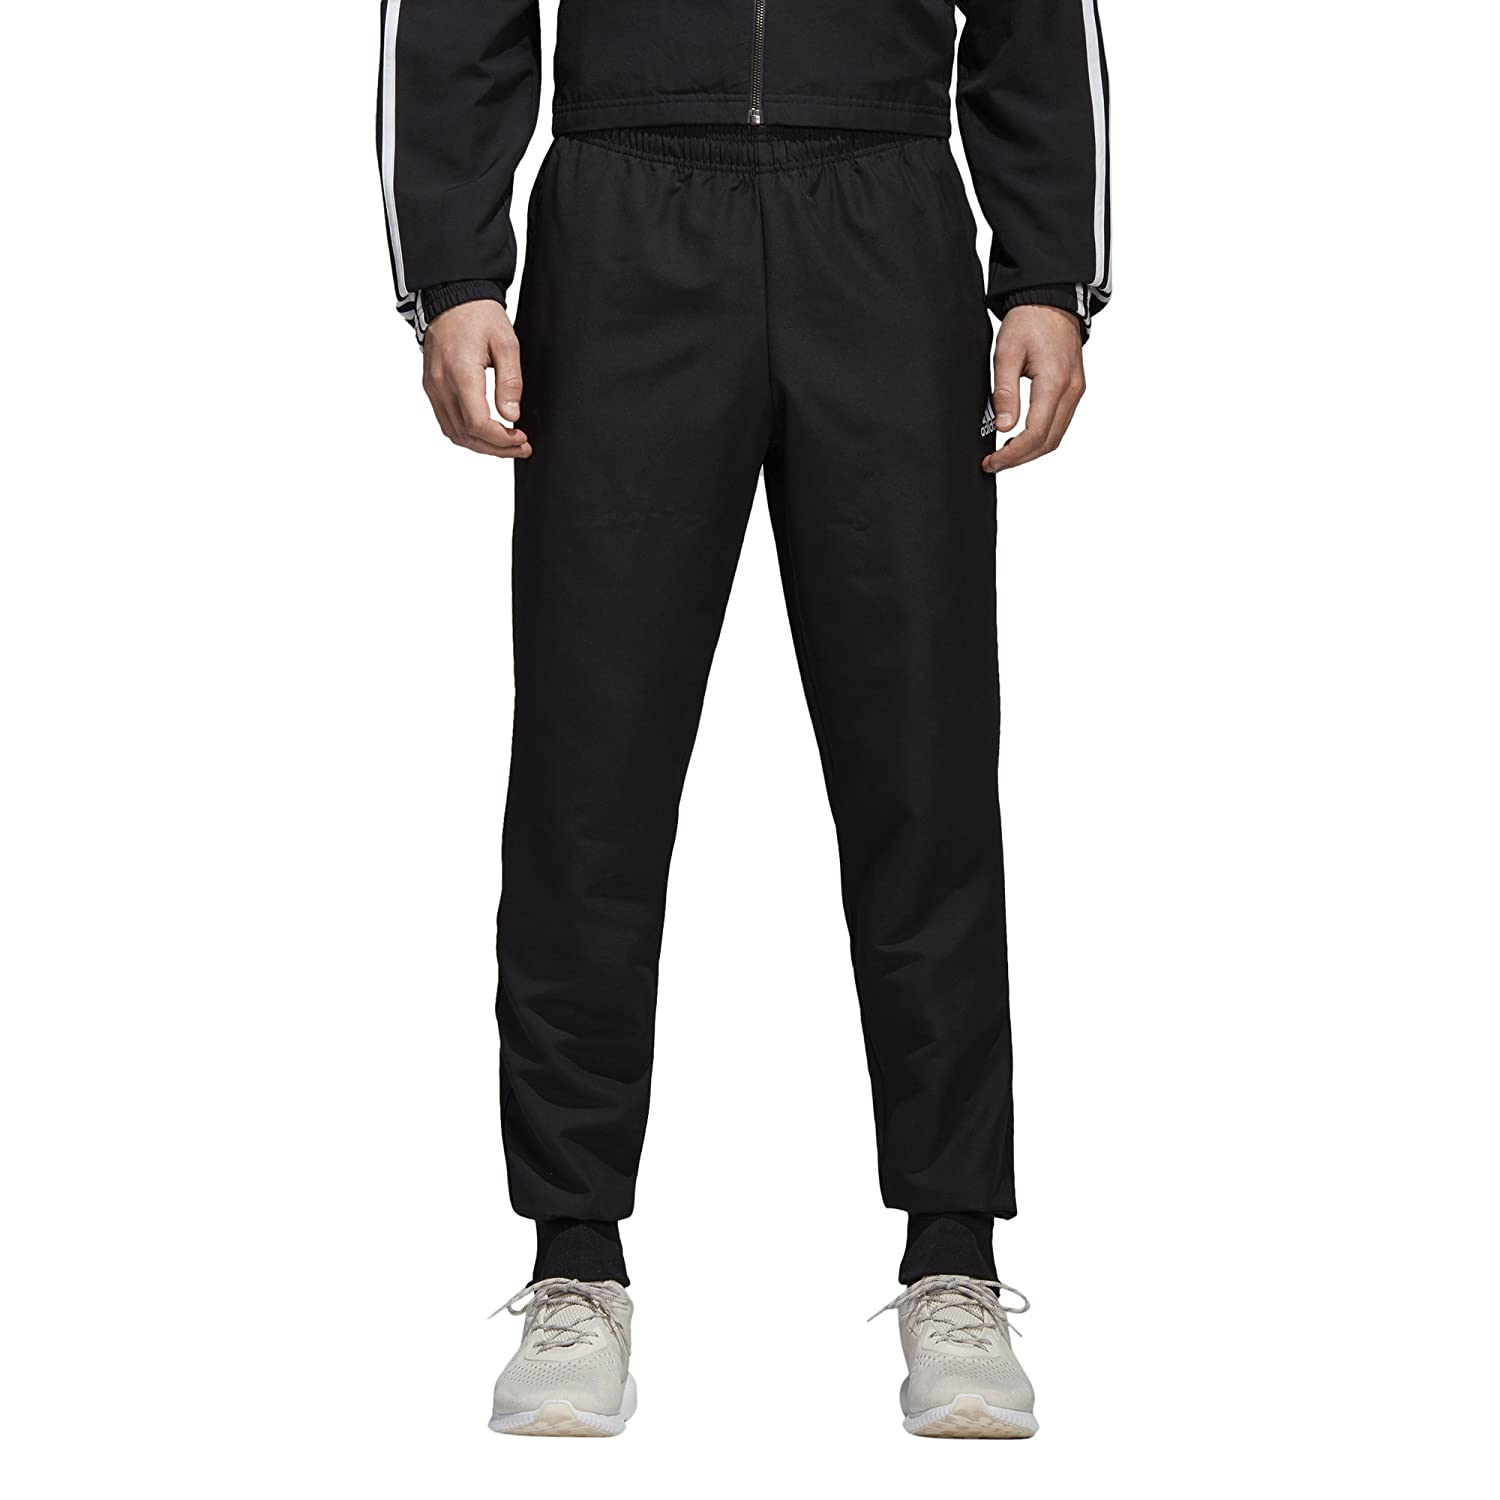 Adidas Men's Essentials Stanford 2 Cuffed Pants